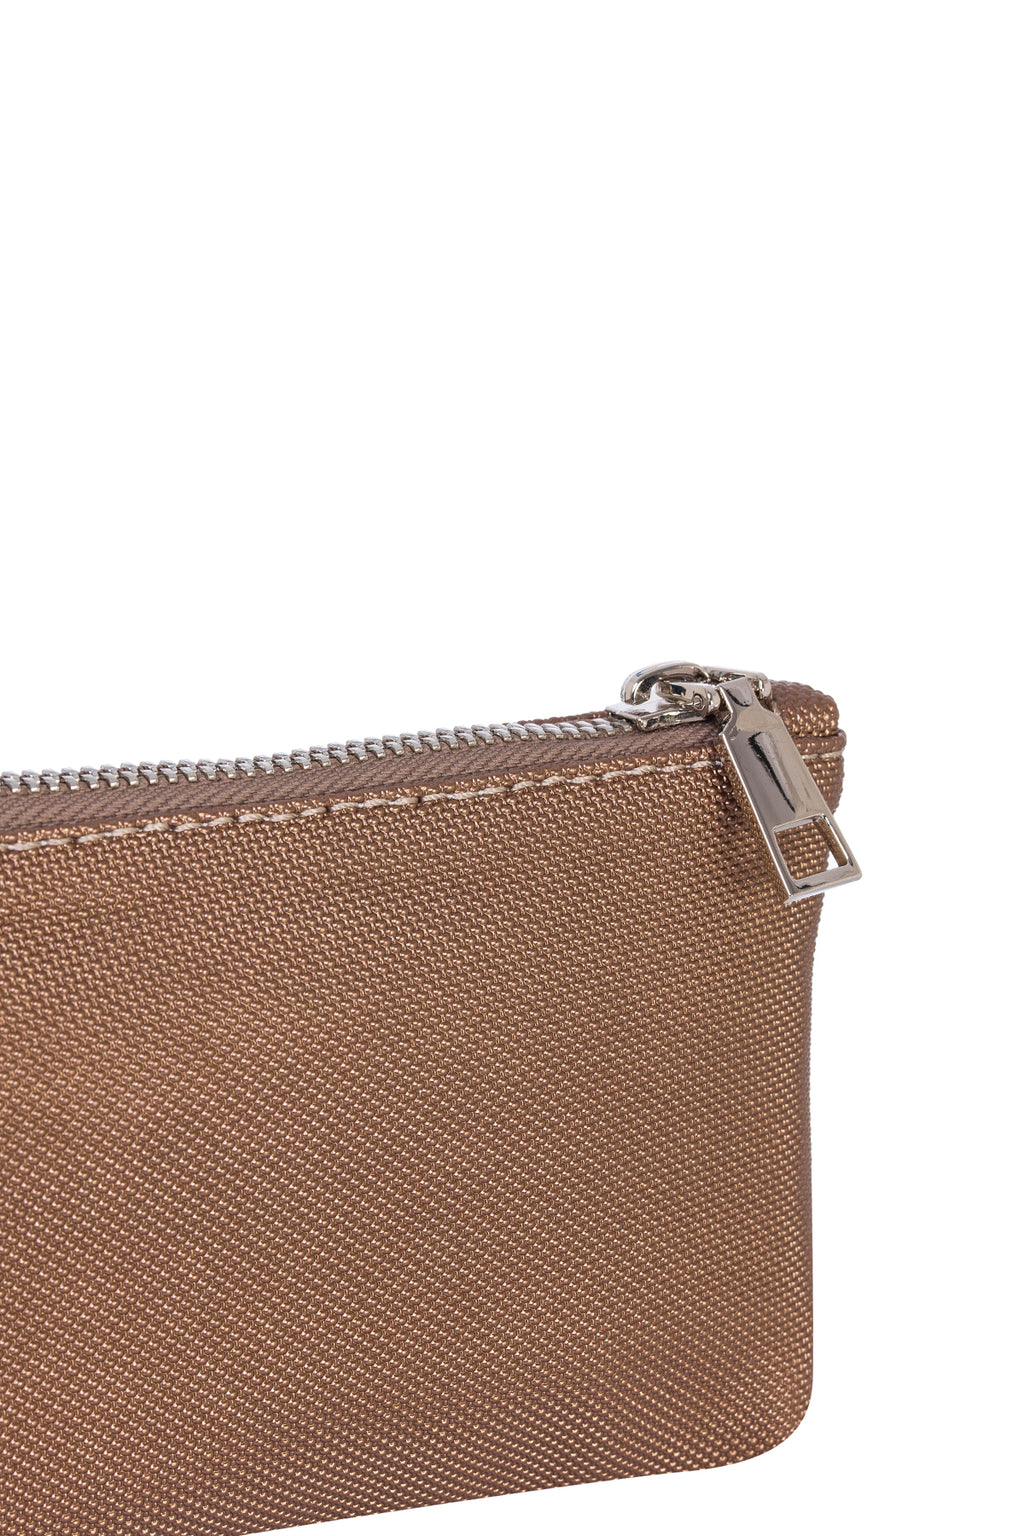 U-hide <br> Inner Pouch <br> Small - Gold